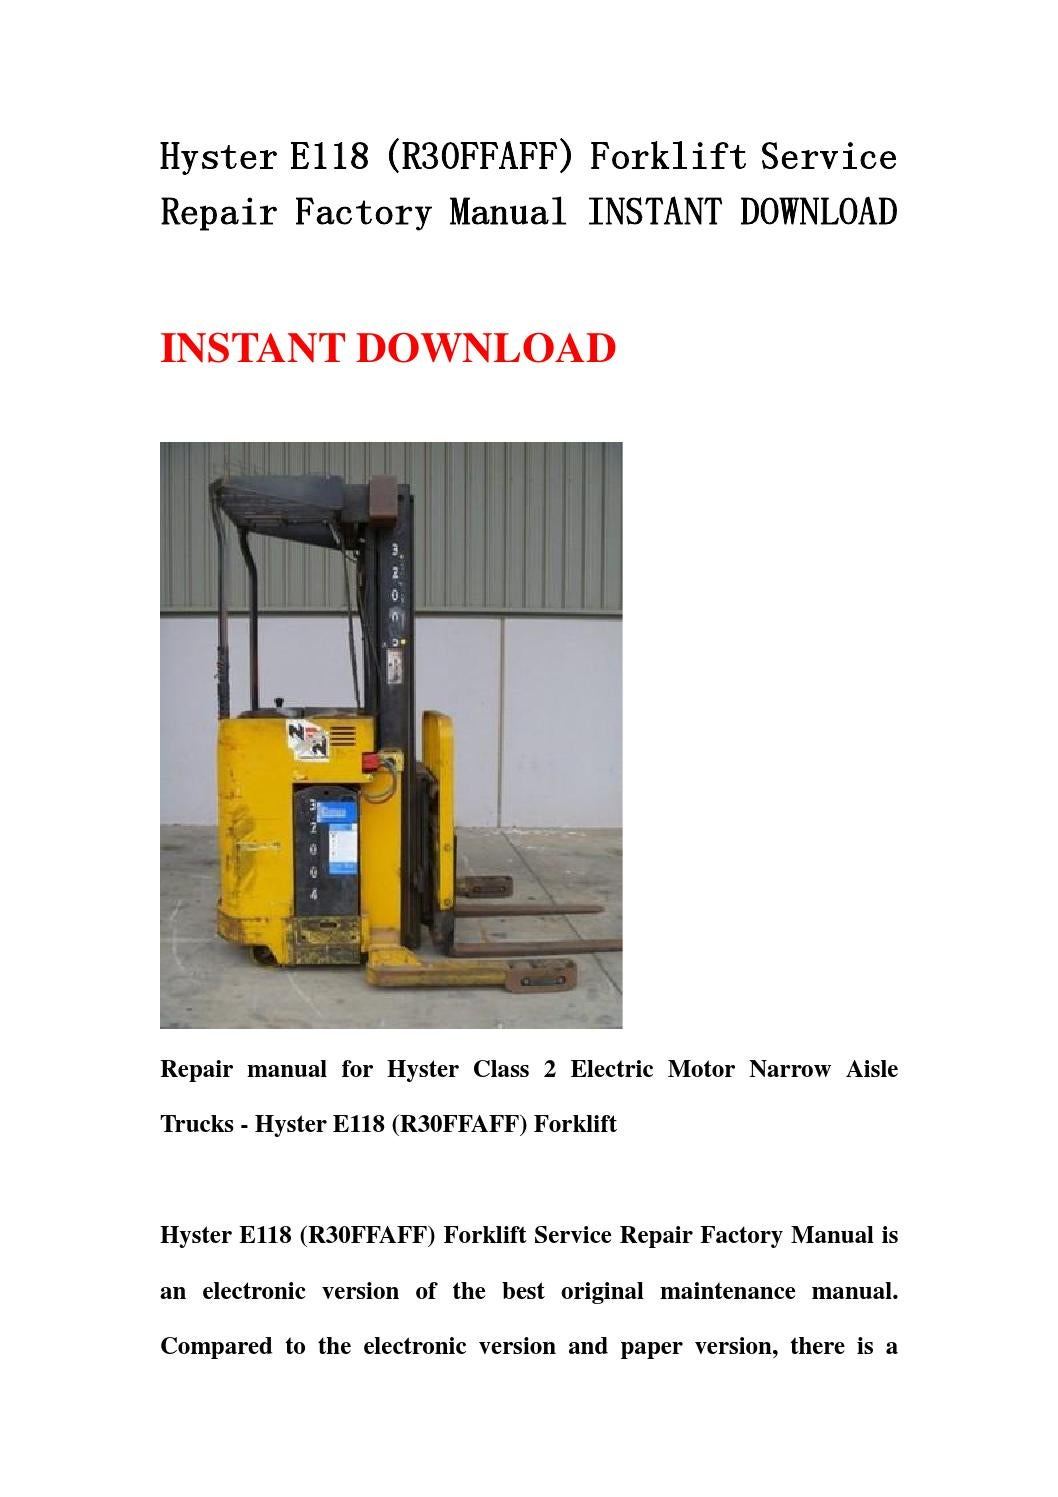 Hyster E118  R30ffaff  Forklift Service Repair Factory